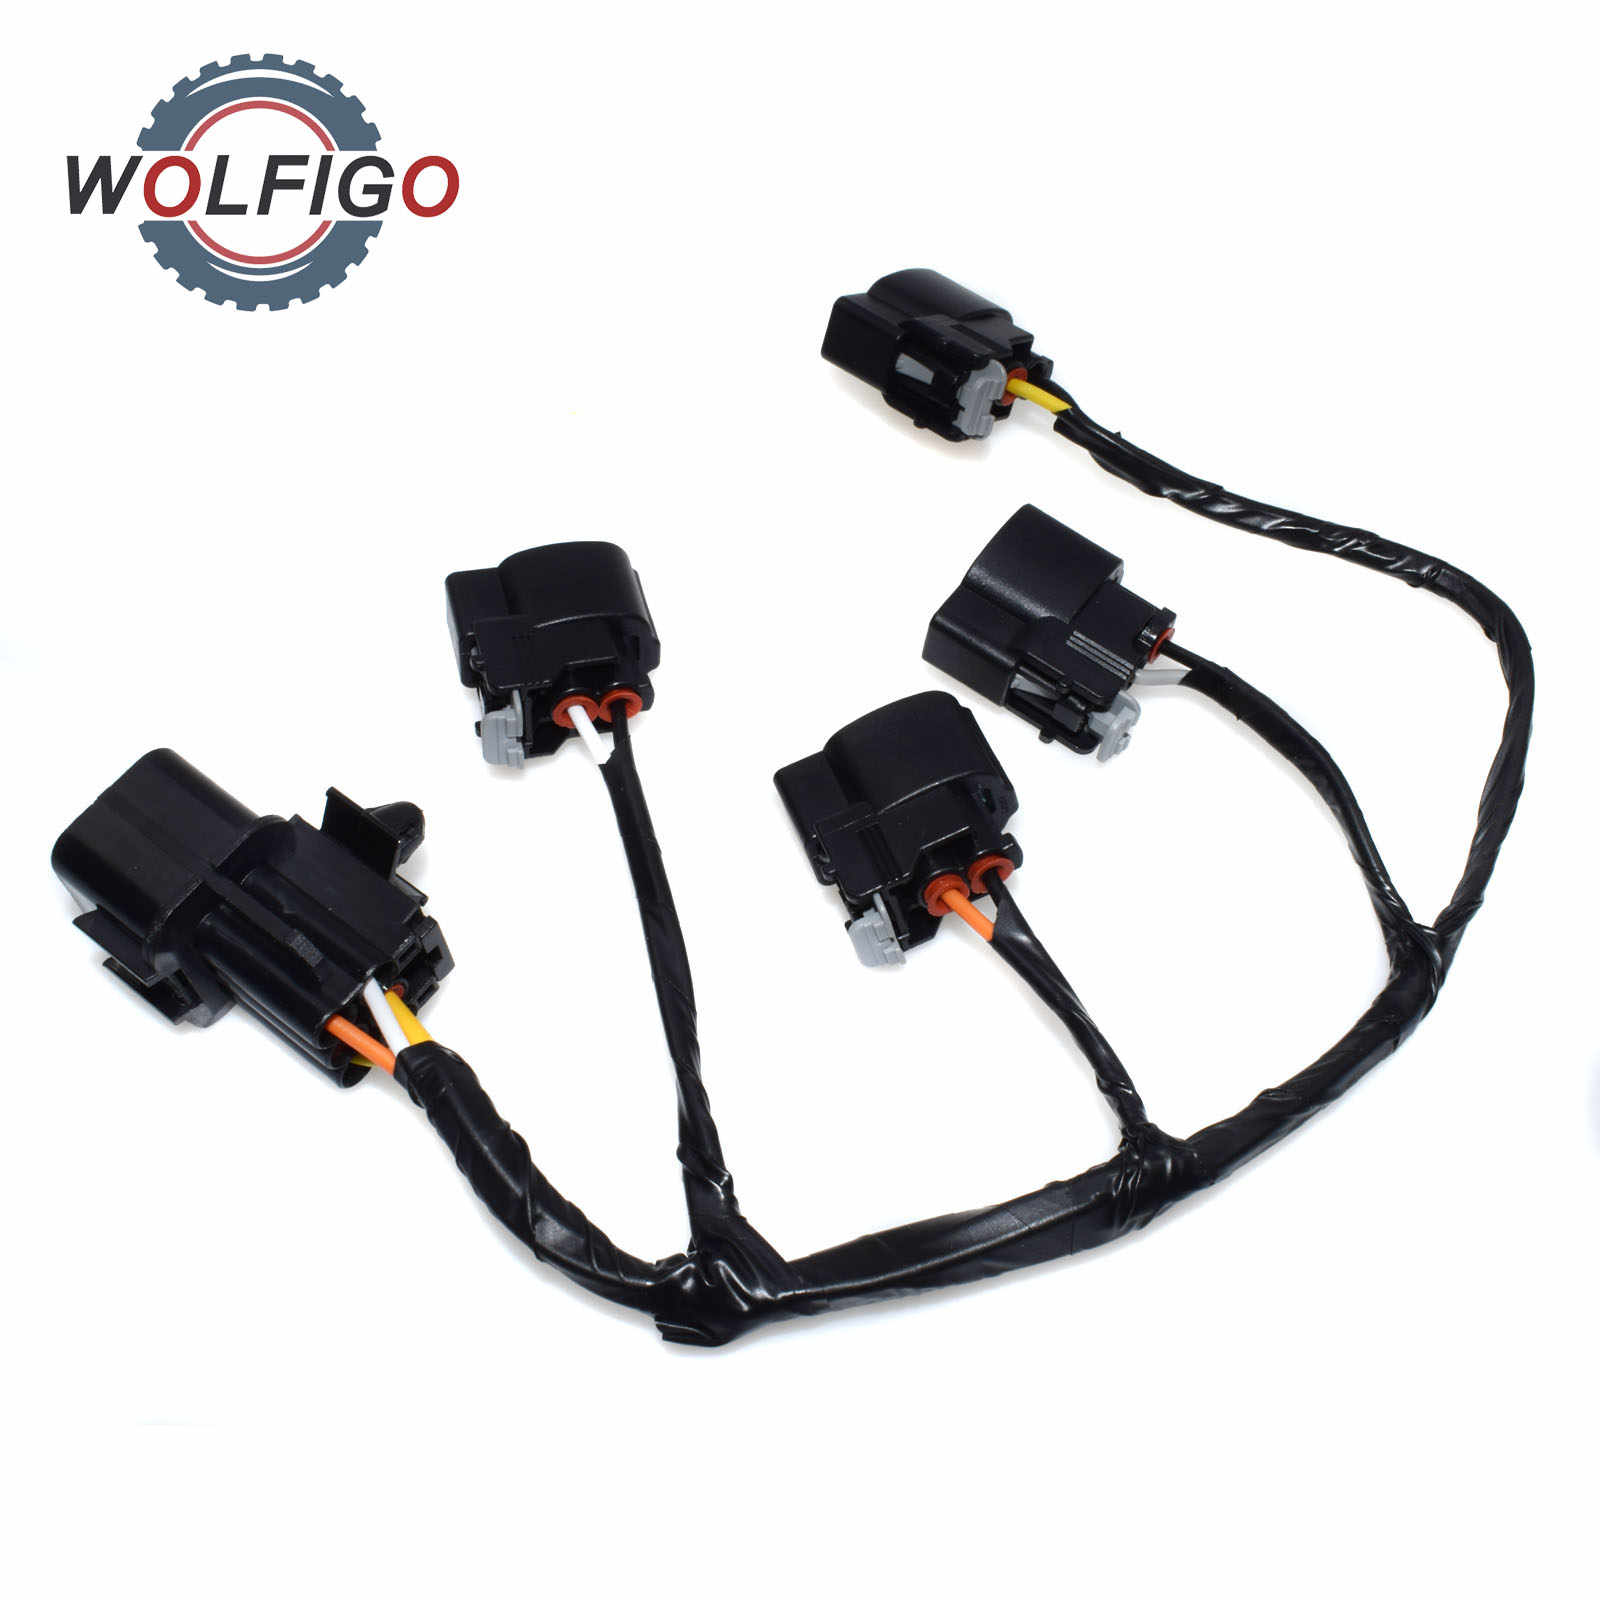 medium resolution of hyundai veloster wiring harness wiring diagram view hyundai veloster wiring diagram detail feedback questions about wolfigo